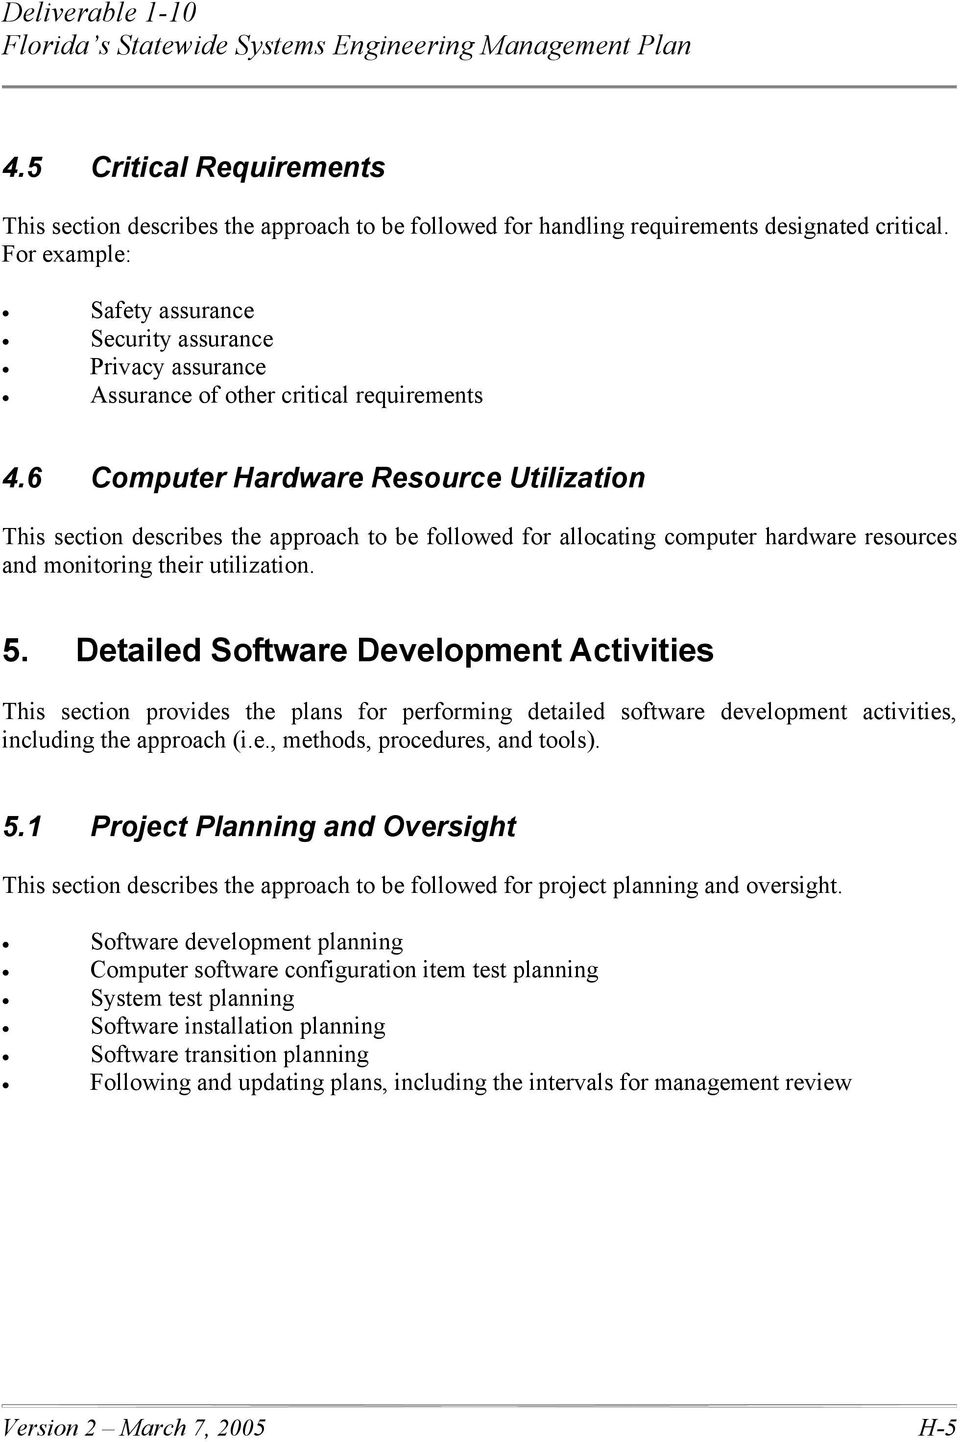 6 Computer Hardware Resource Utilization This section describes the approach to be followed for allocating computer hardware resources and monitoring their utilization. 5.